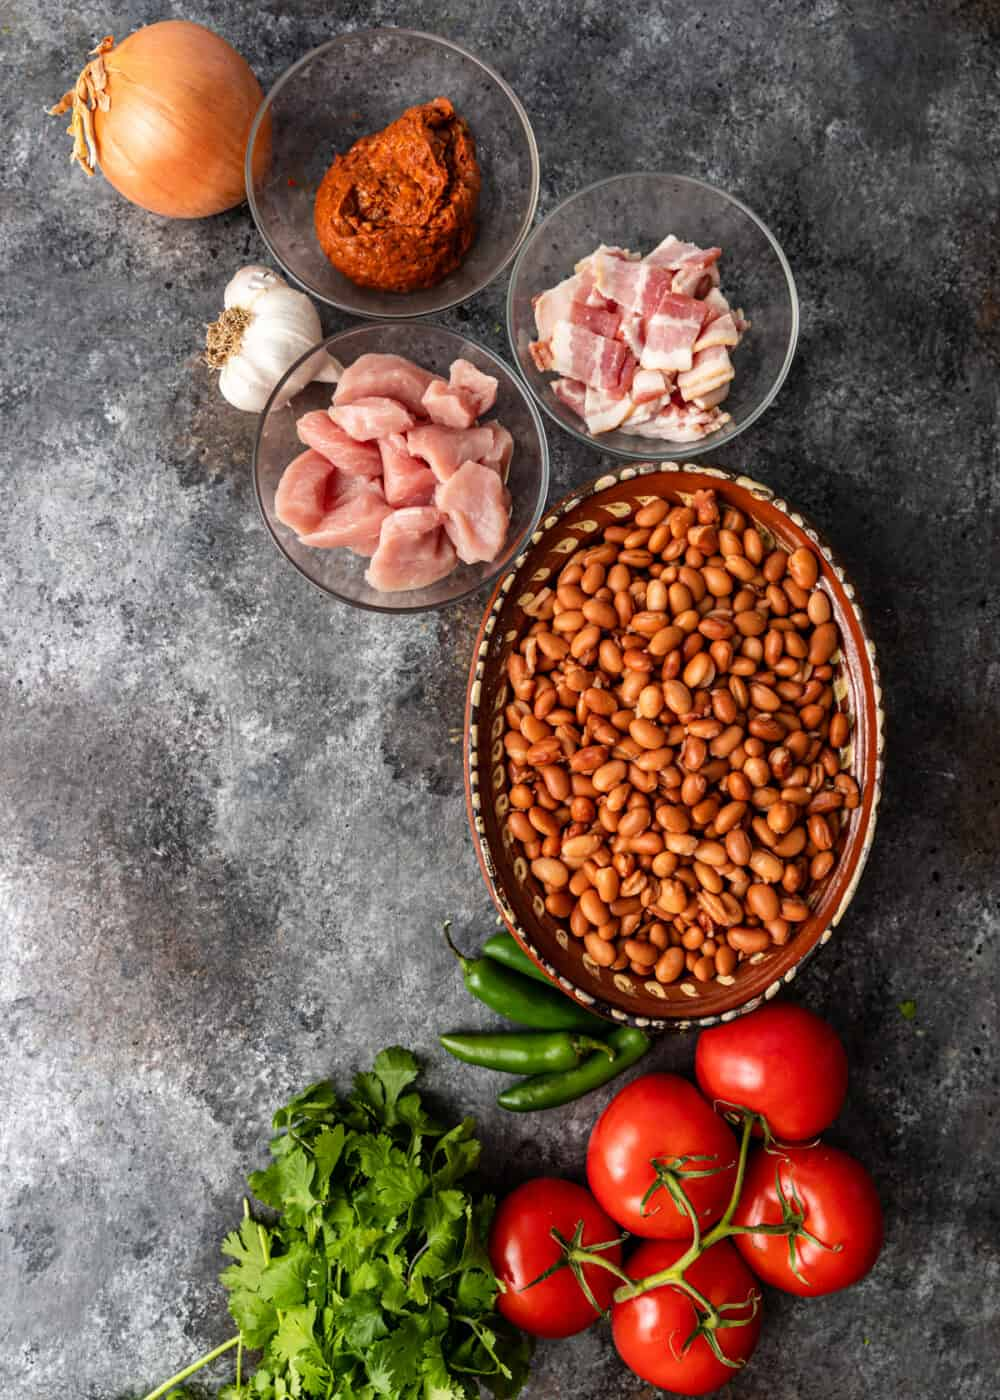 overhead image: bowls of boneless pork, chopped bacon, and other ingredients for a Mexican pinto beans side dish